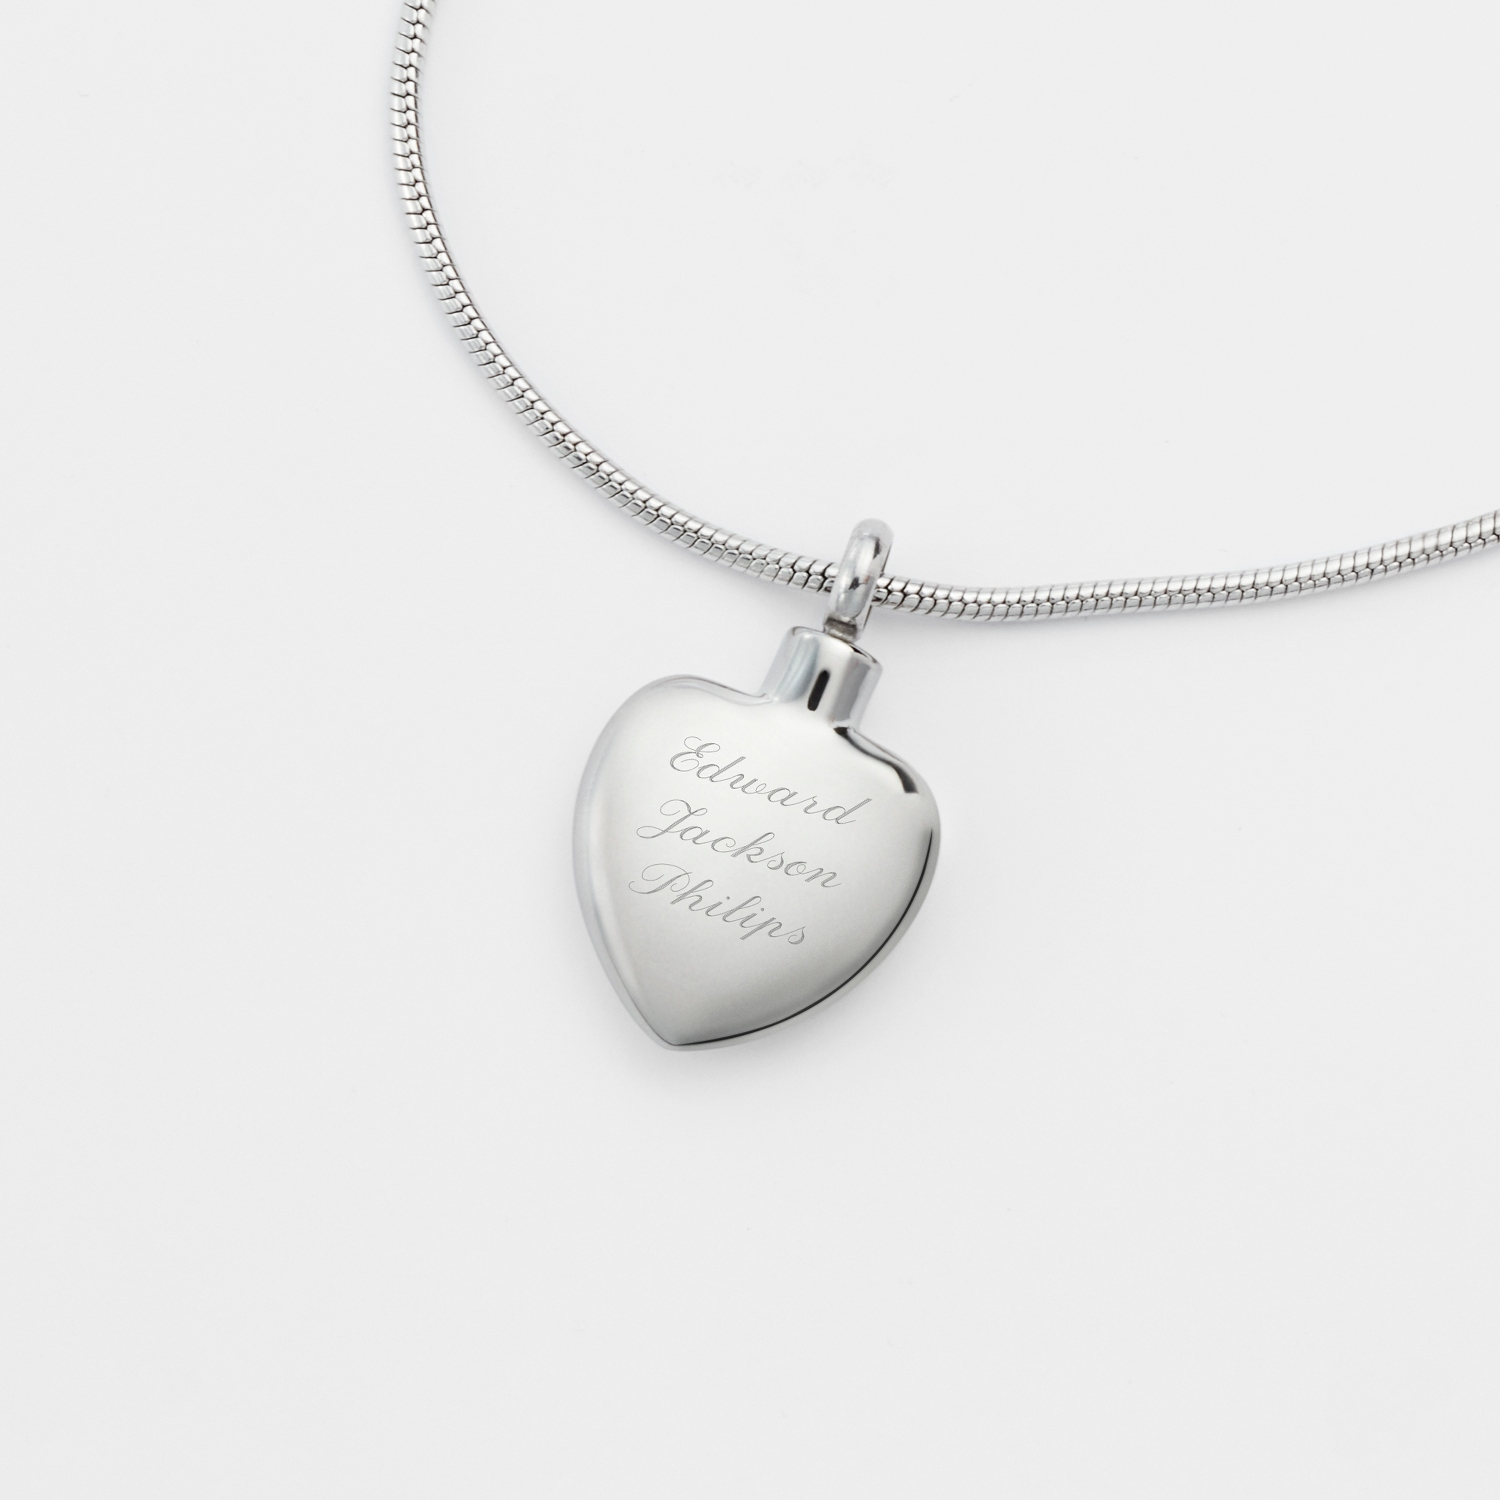 memorial engraved urn collections necklace personalized stainless steel jewelry s quote mother in waterproof products crystal pink with includes